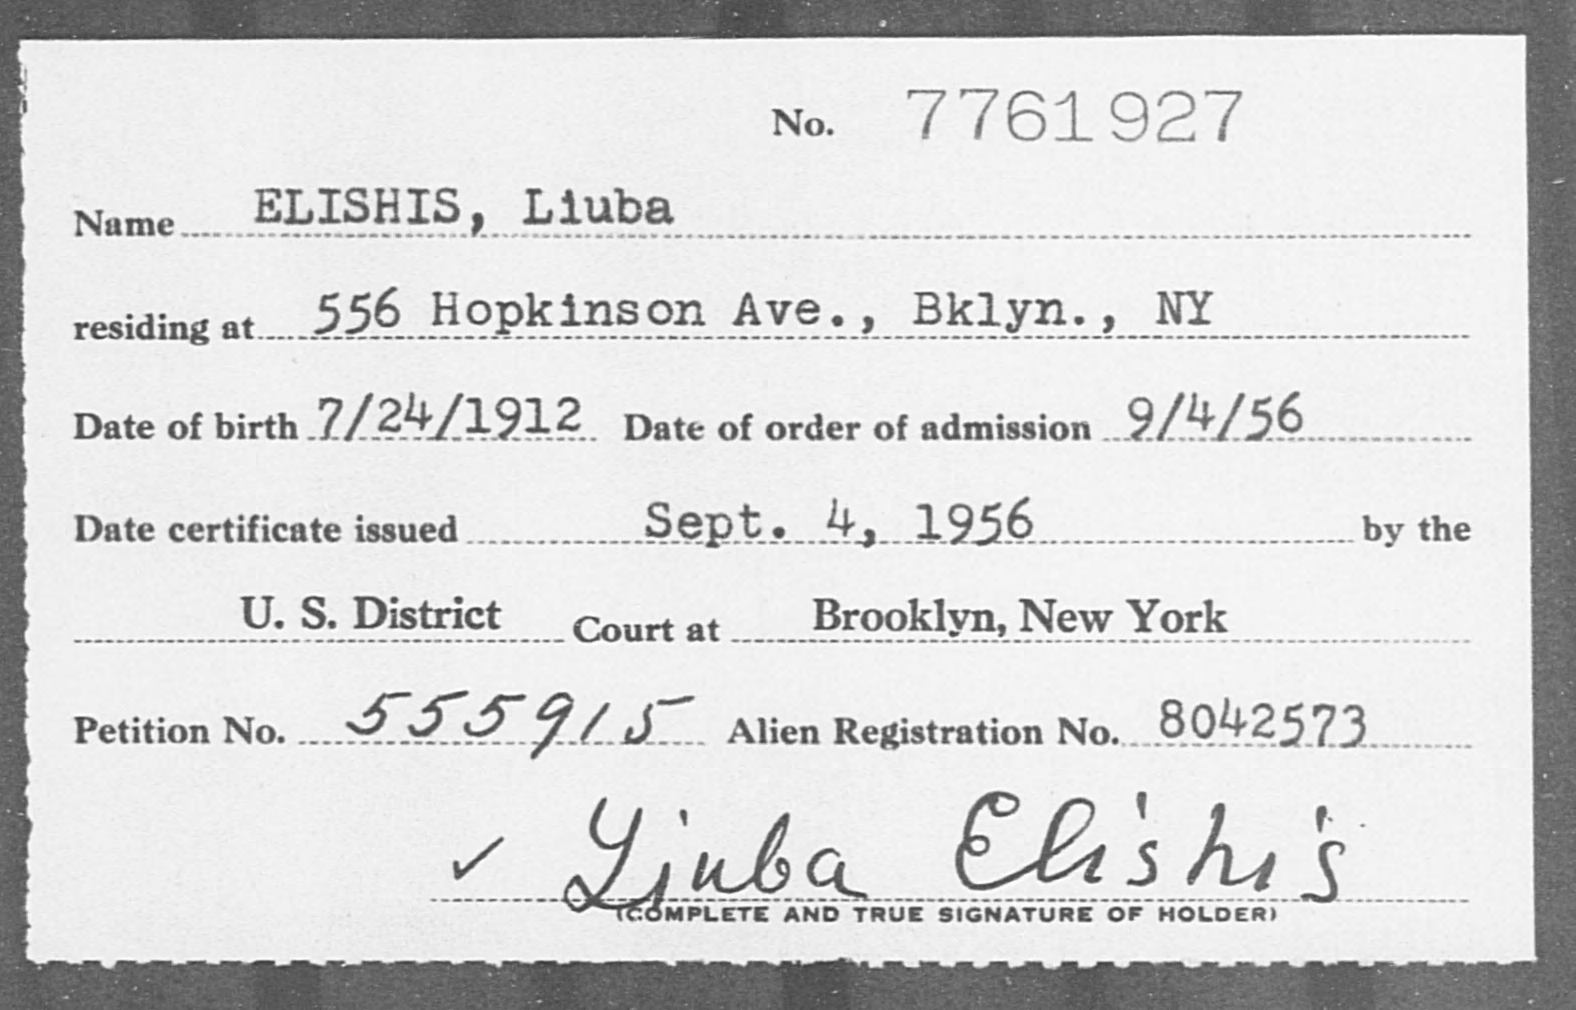 ELISHIS, Liuba - Born: 1912, Naturalized: 1956